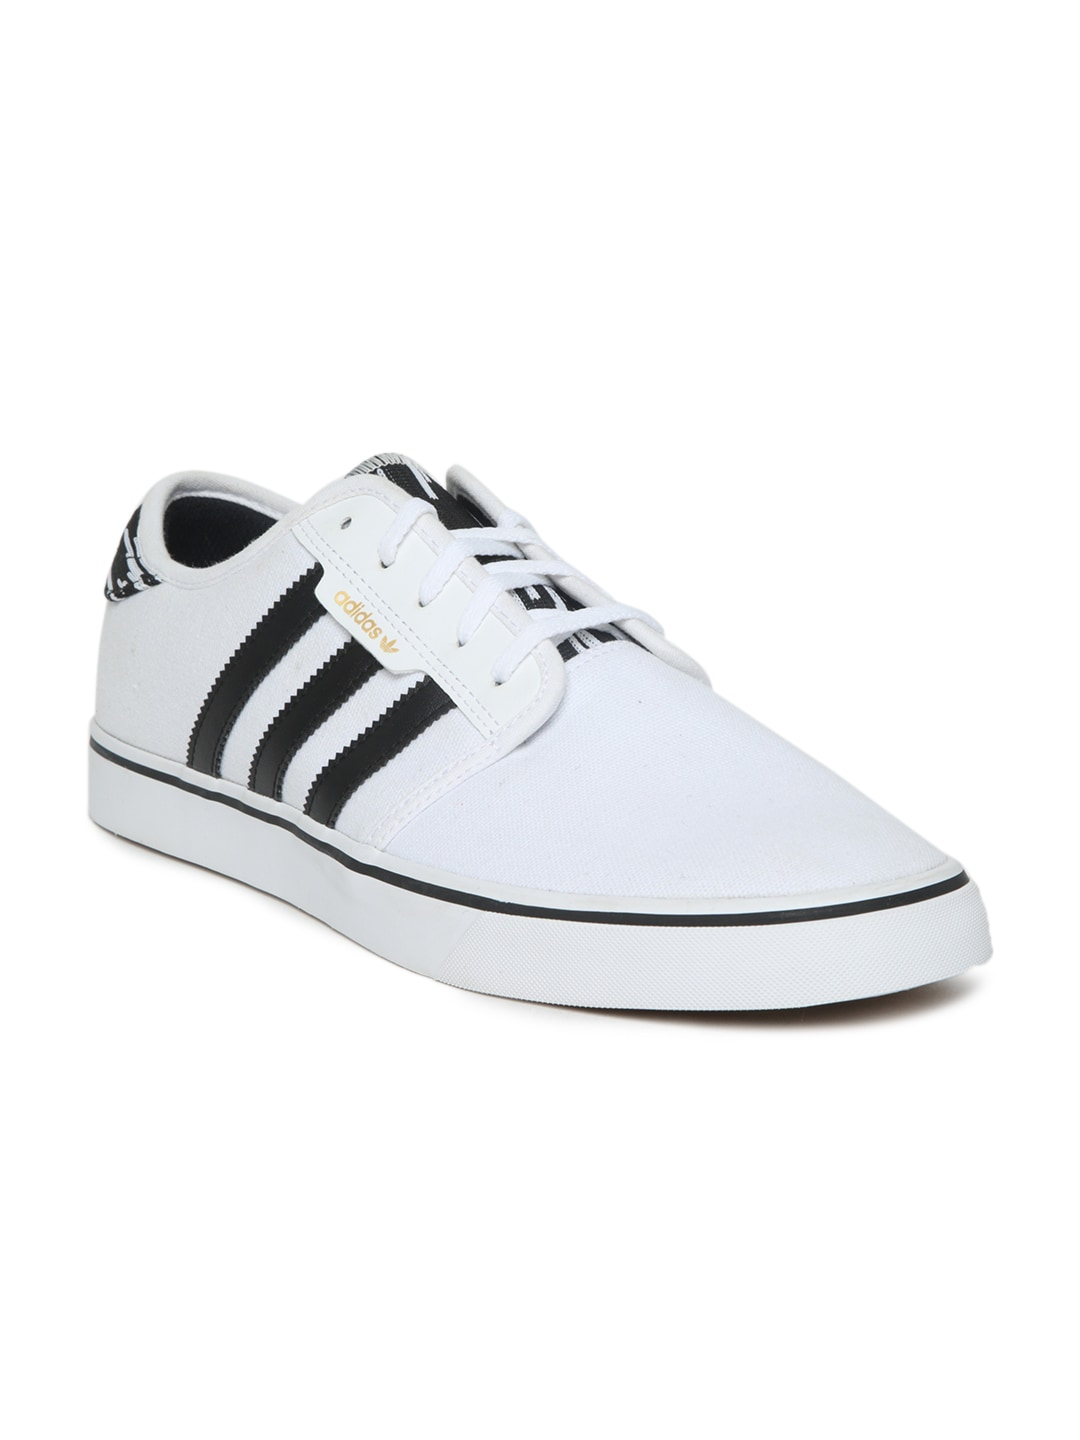 d10990231cf Adidas Men And Boys - Buy Adidas Men And Boys online in India